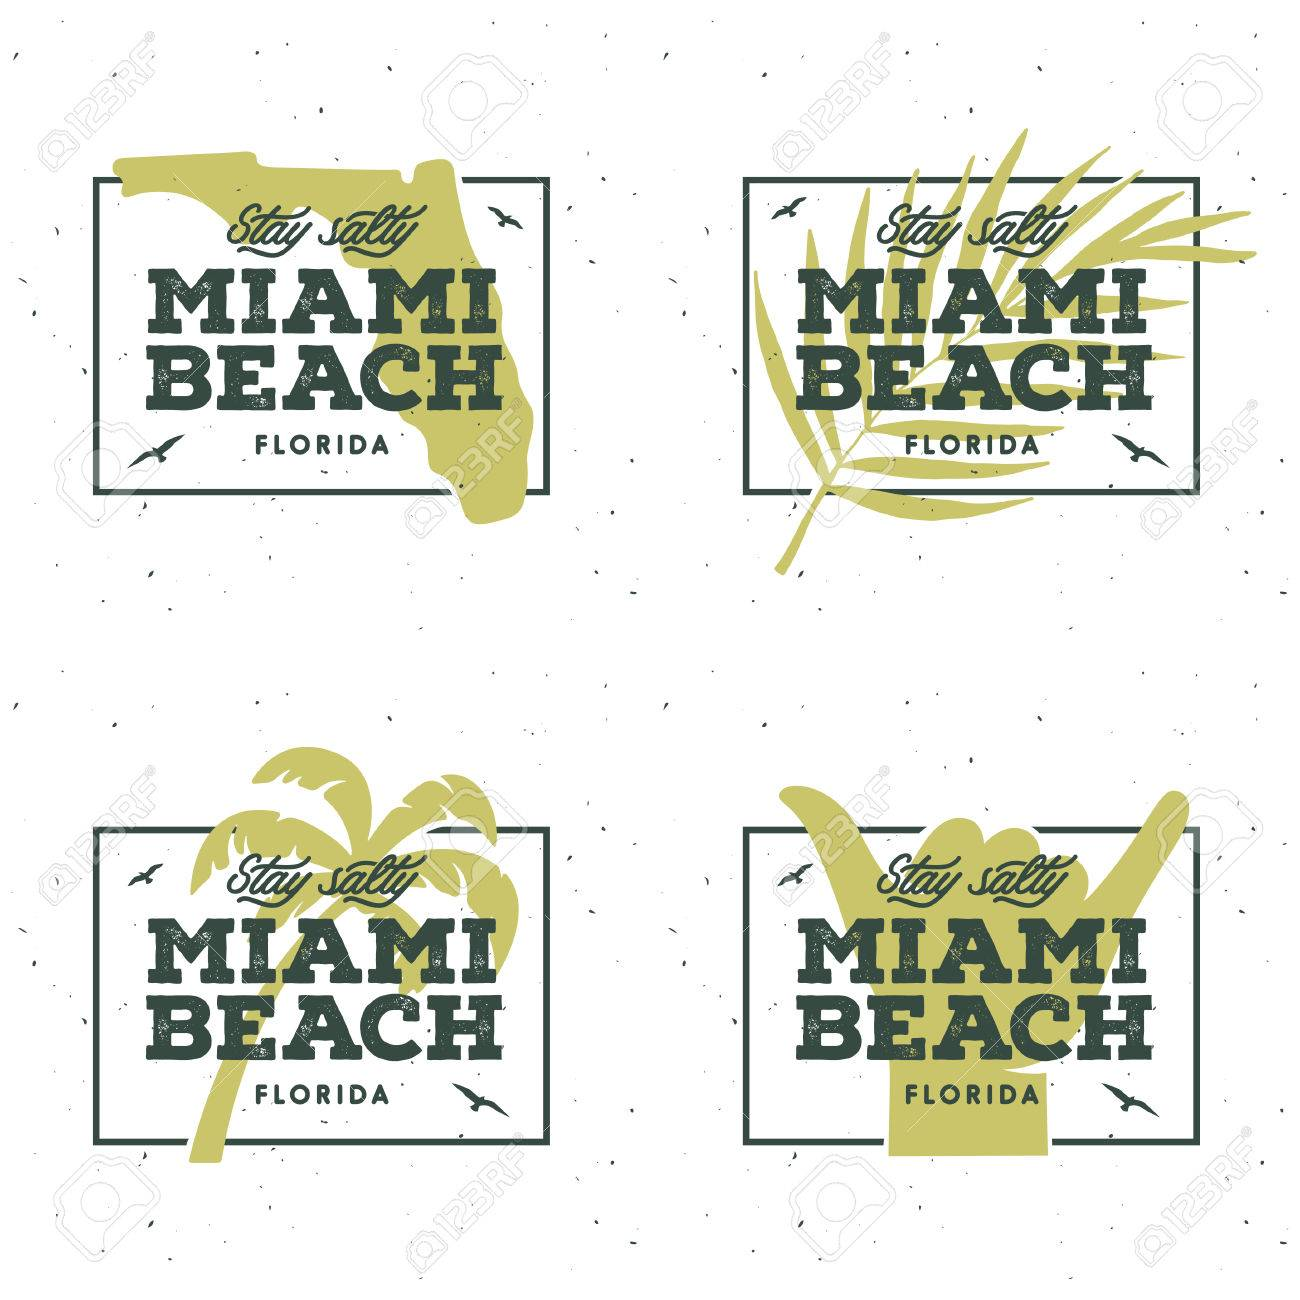 Miami Beach Florida T Shirt Graphics Summer Vacation Related Apparel Design Stay Salty